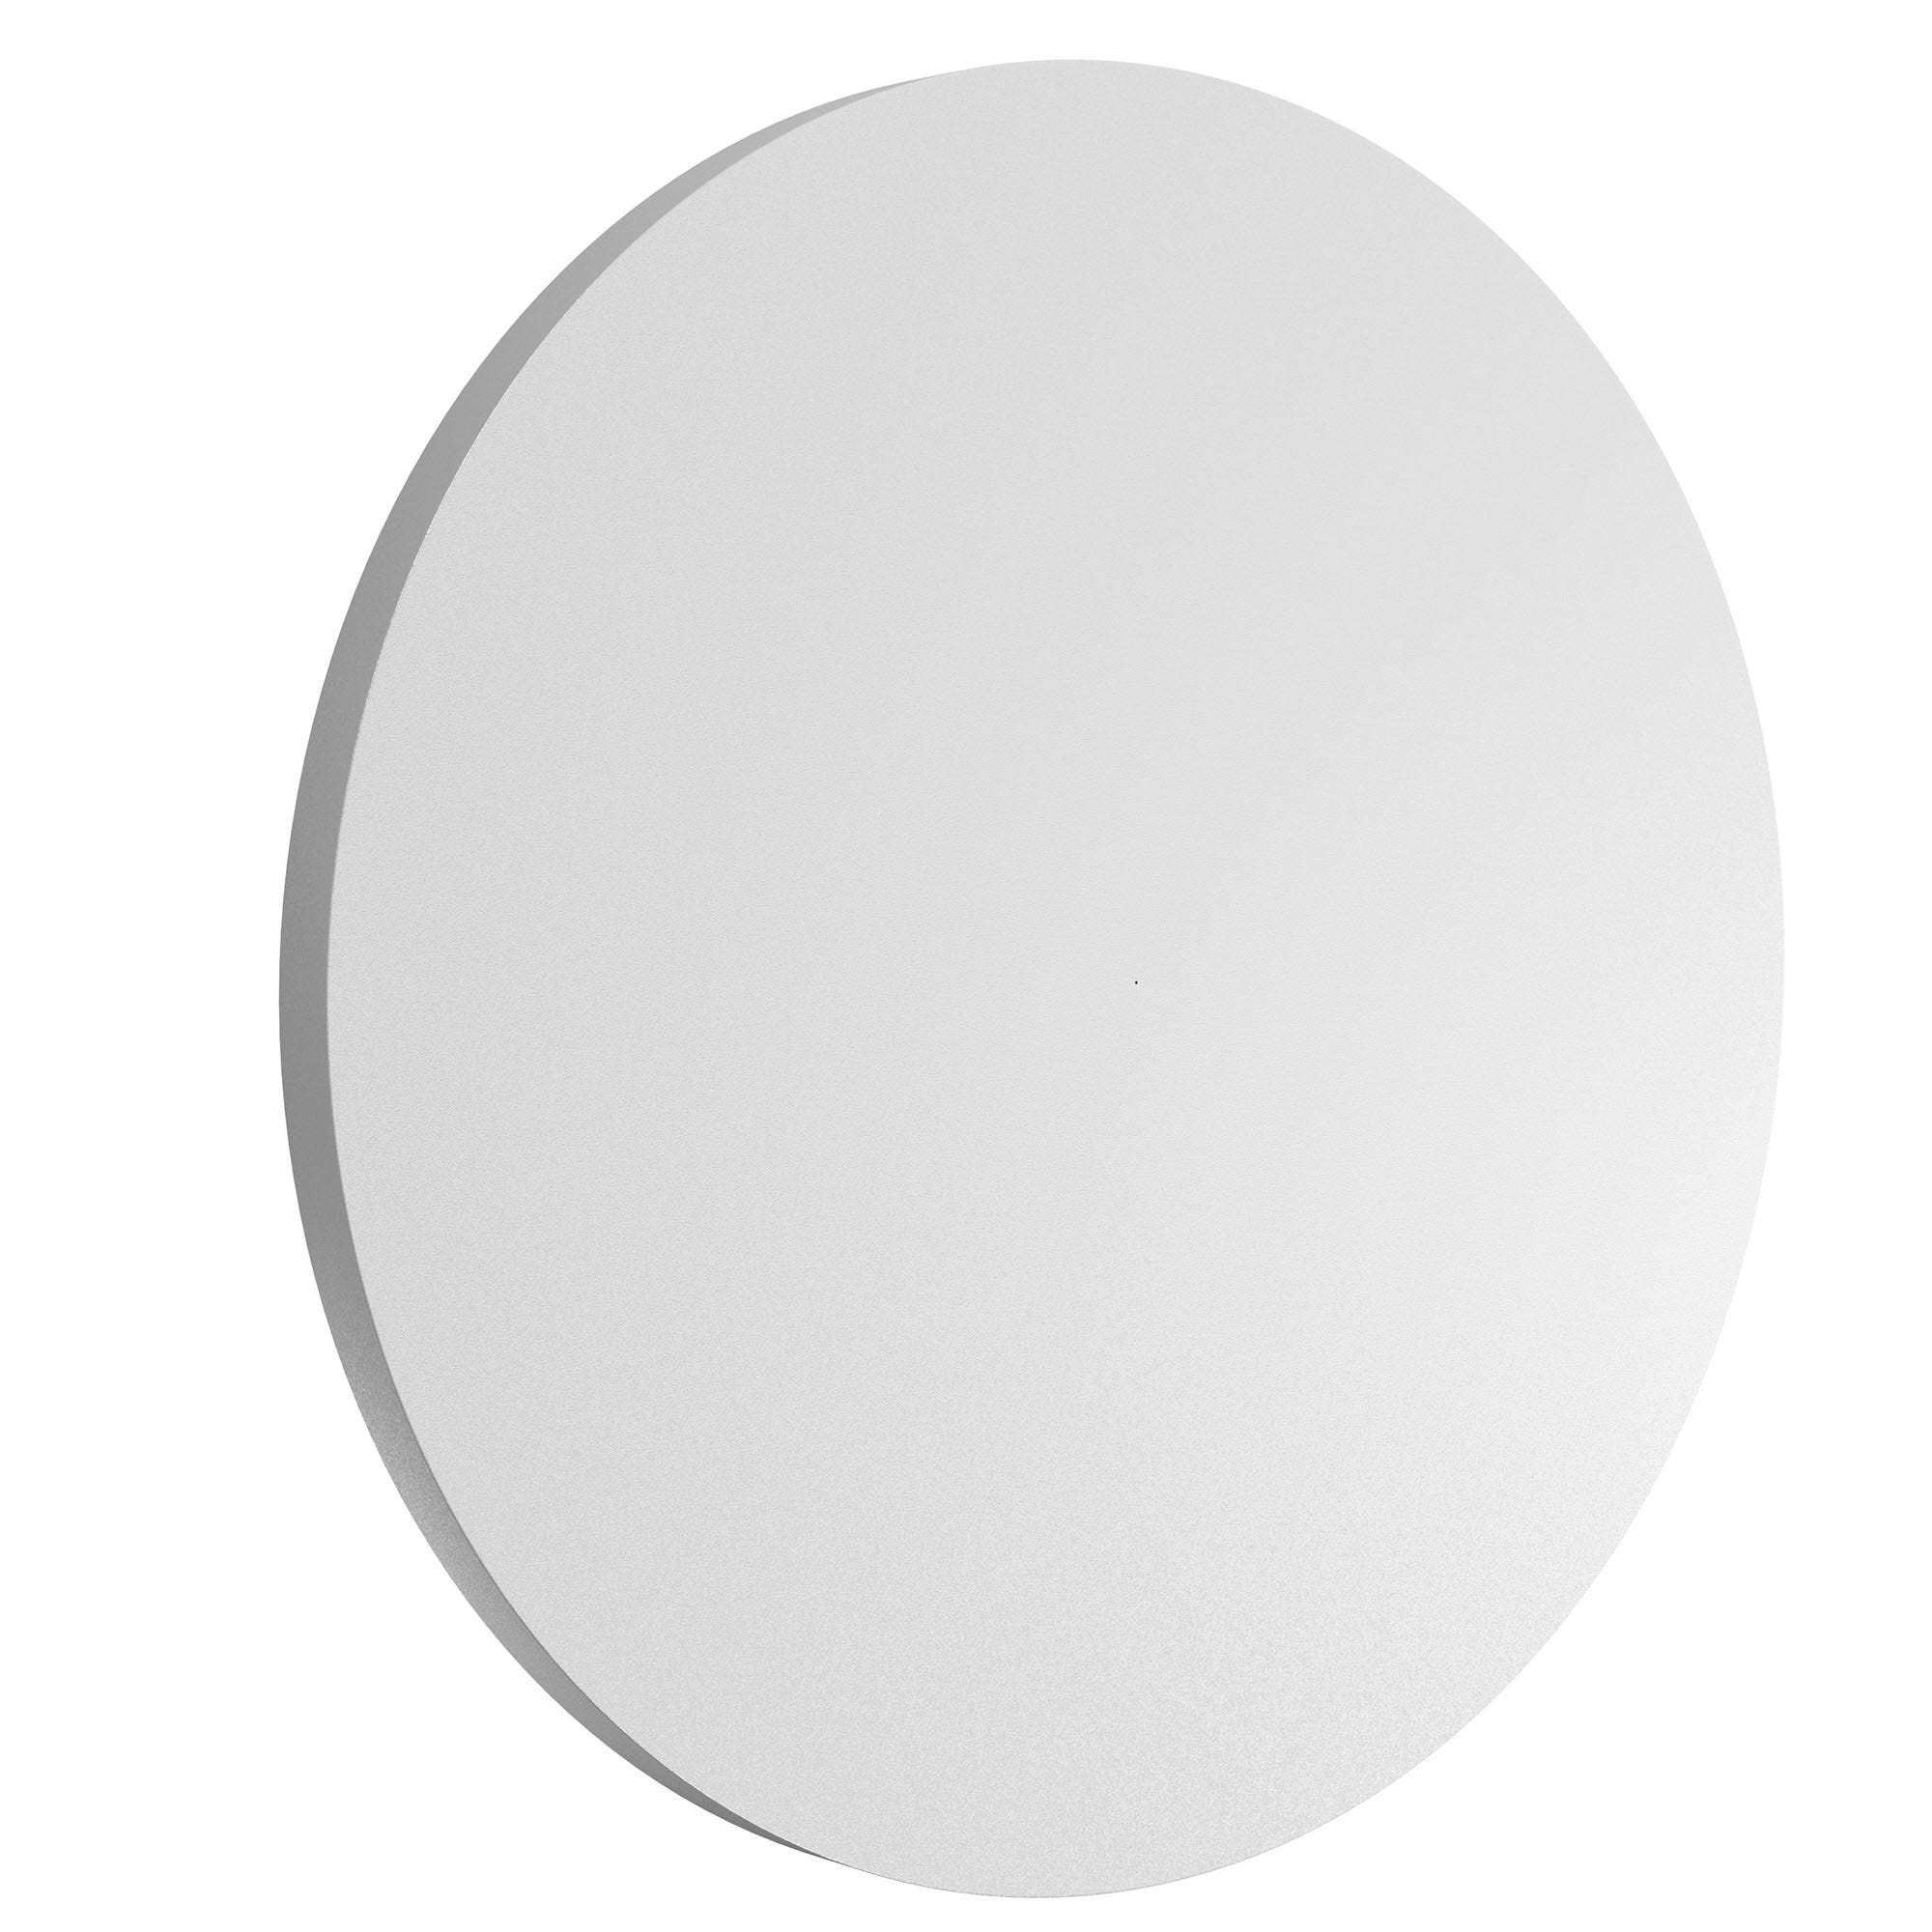 As Shown: Camouflage Wall Light White.